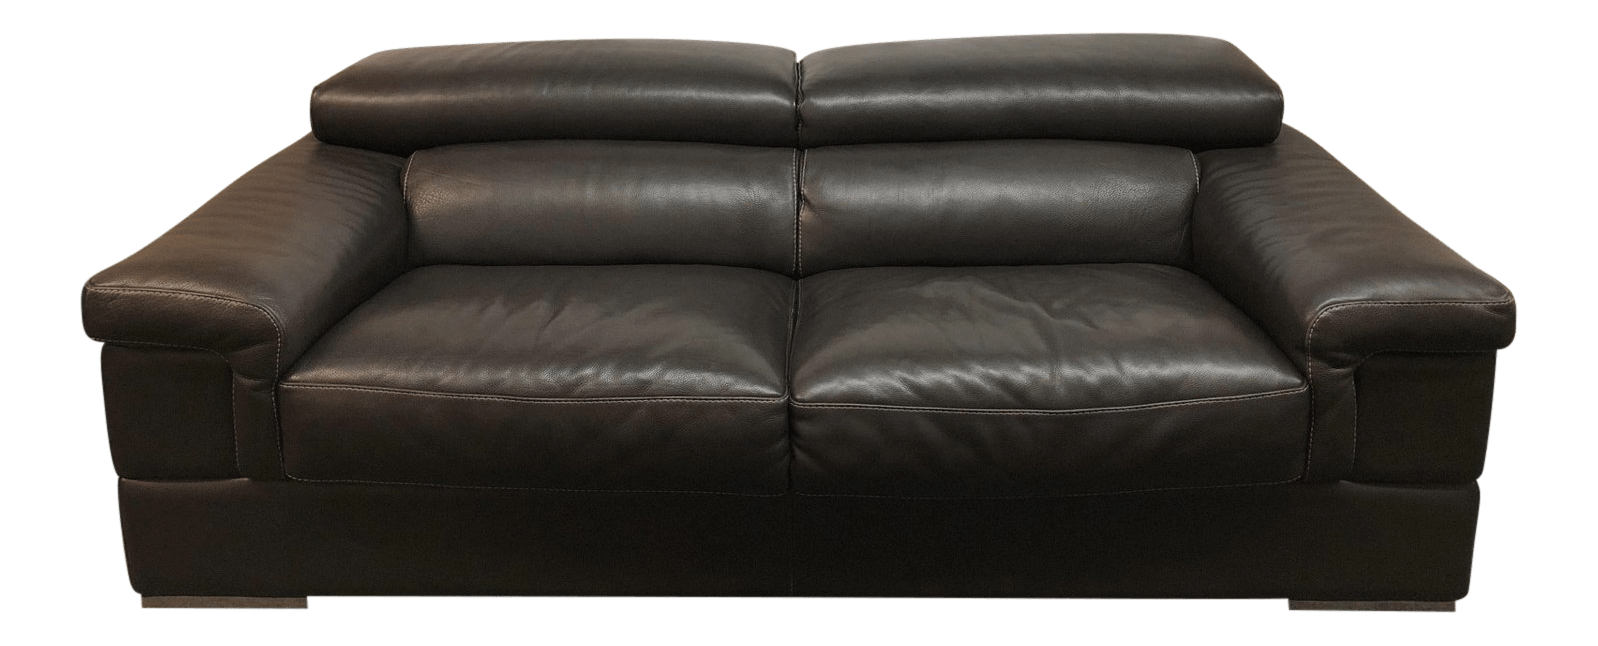 Divani Incanto Group Incanto Group Divani Italian Leather Sofa